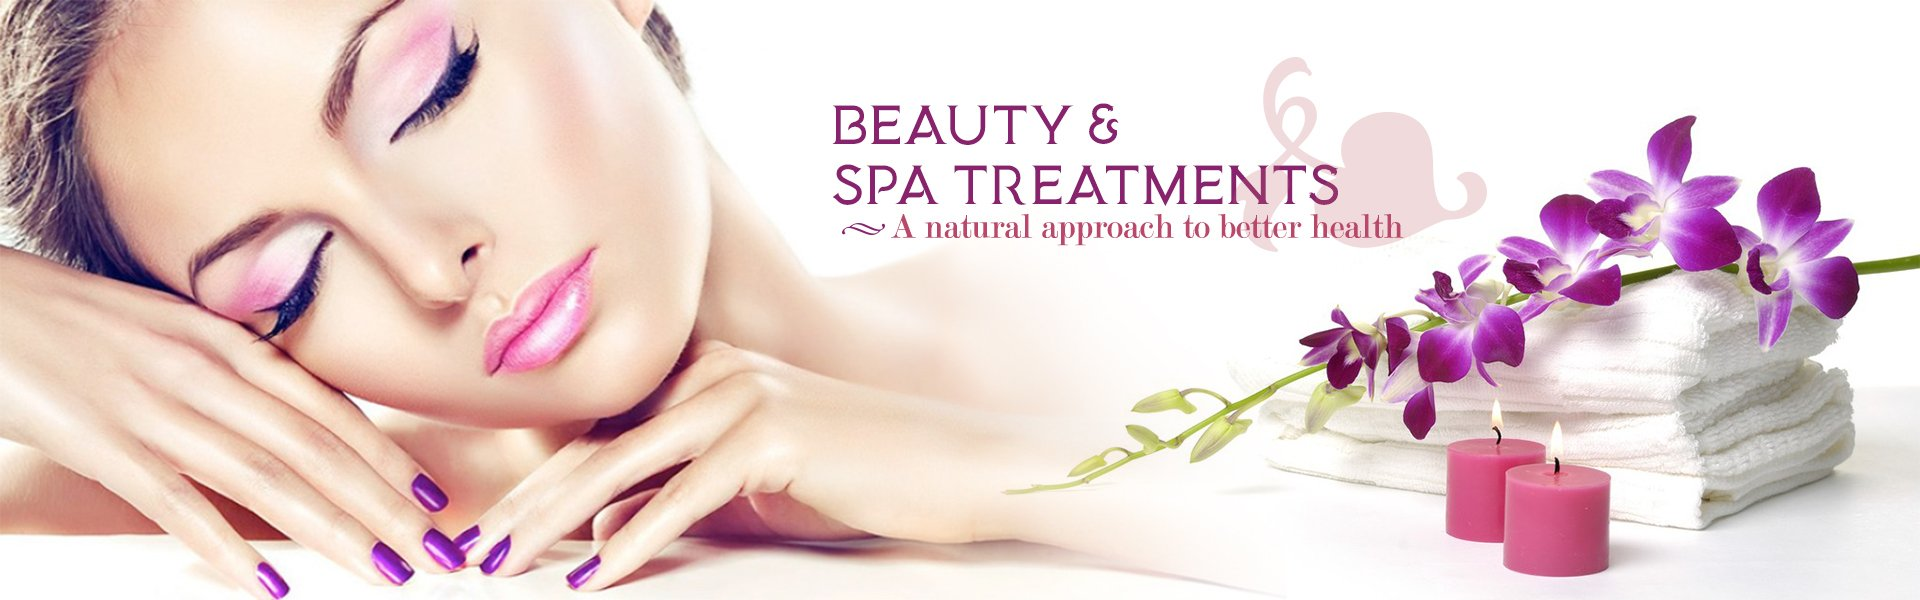 Linqto Me Beauty Services At Home In Dubai Sweet Violet Beauty Salon Llc